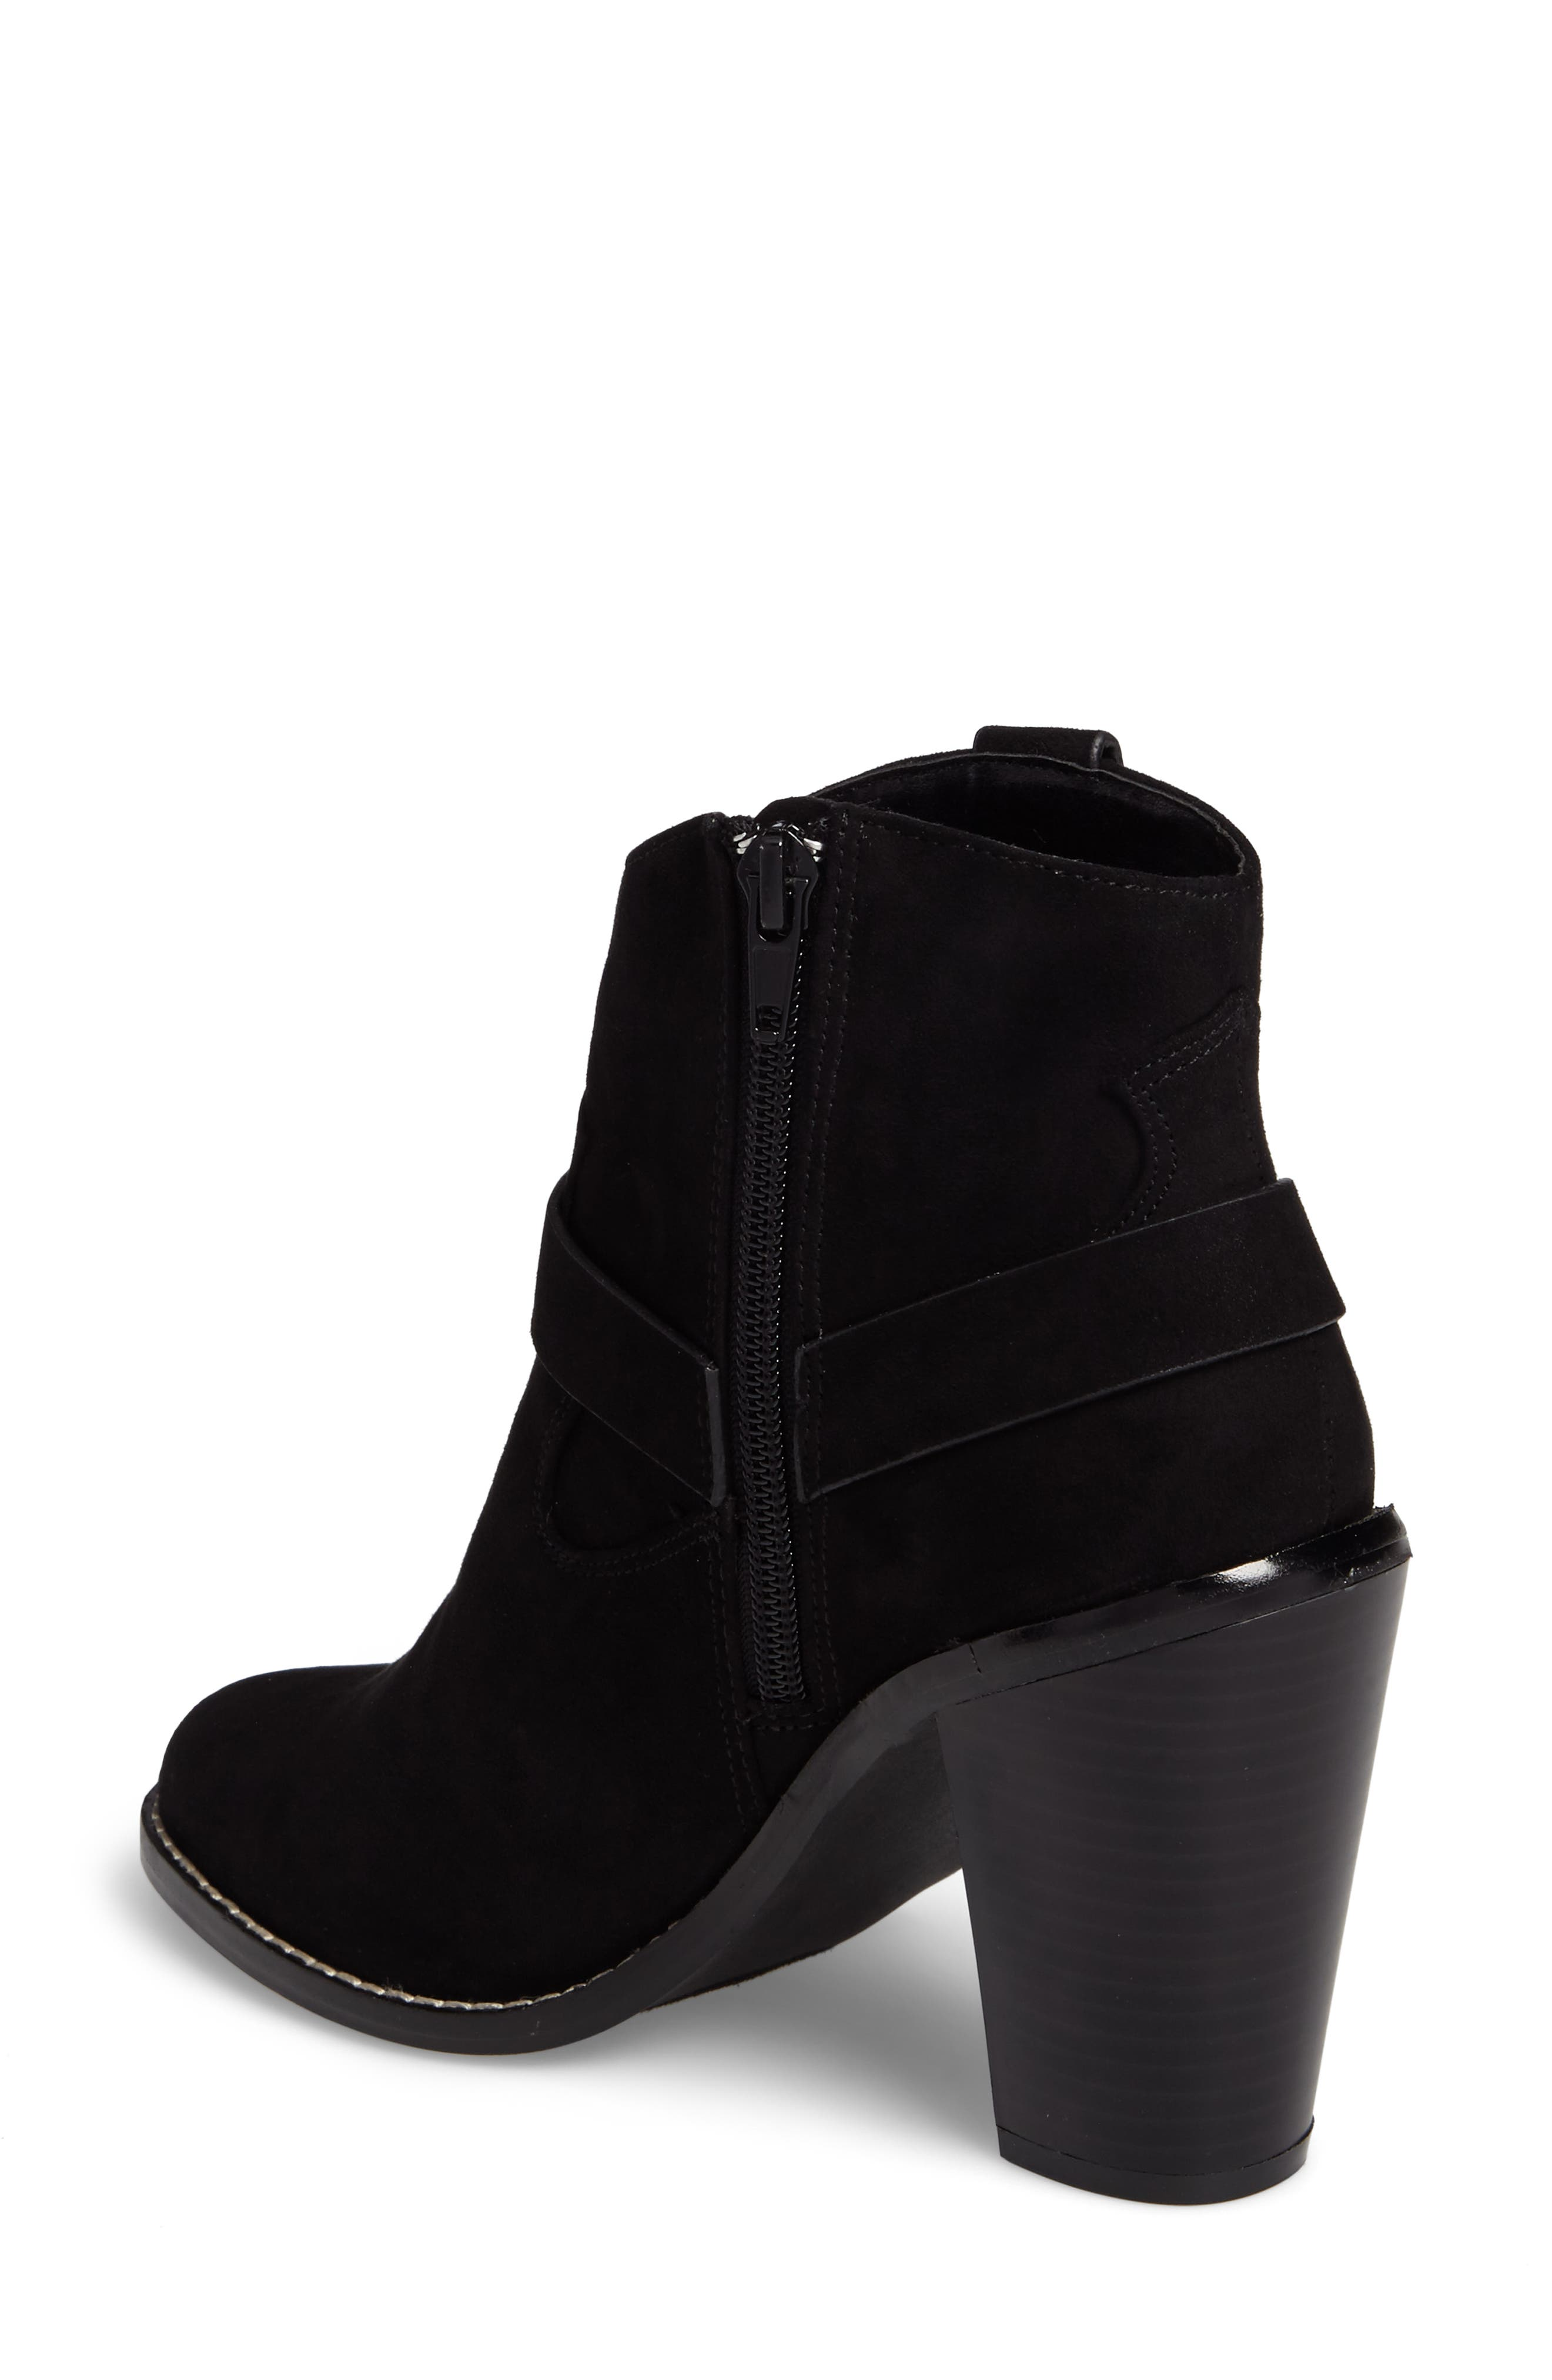 Fancye Ringed Ankle Strap Bootie,                             Alternate thumbnail 2, color,                             BLACK SYNTHETIC